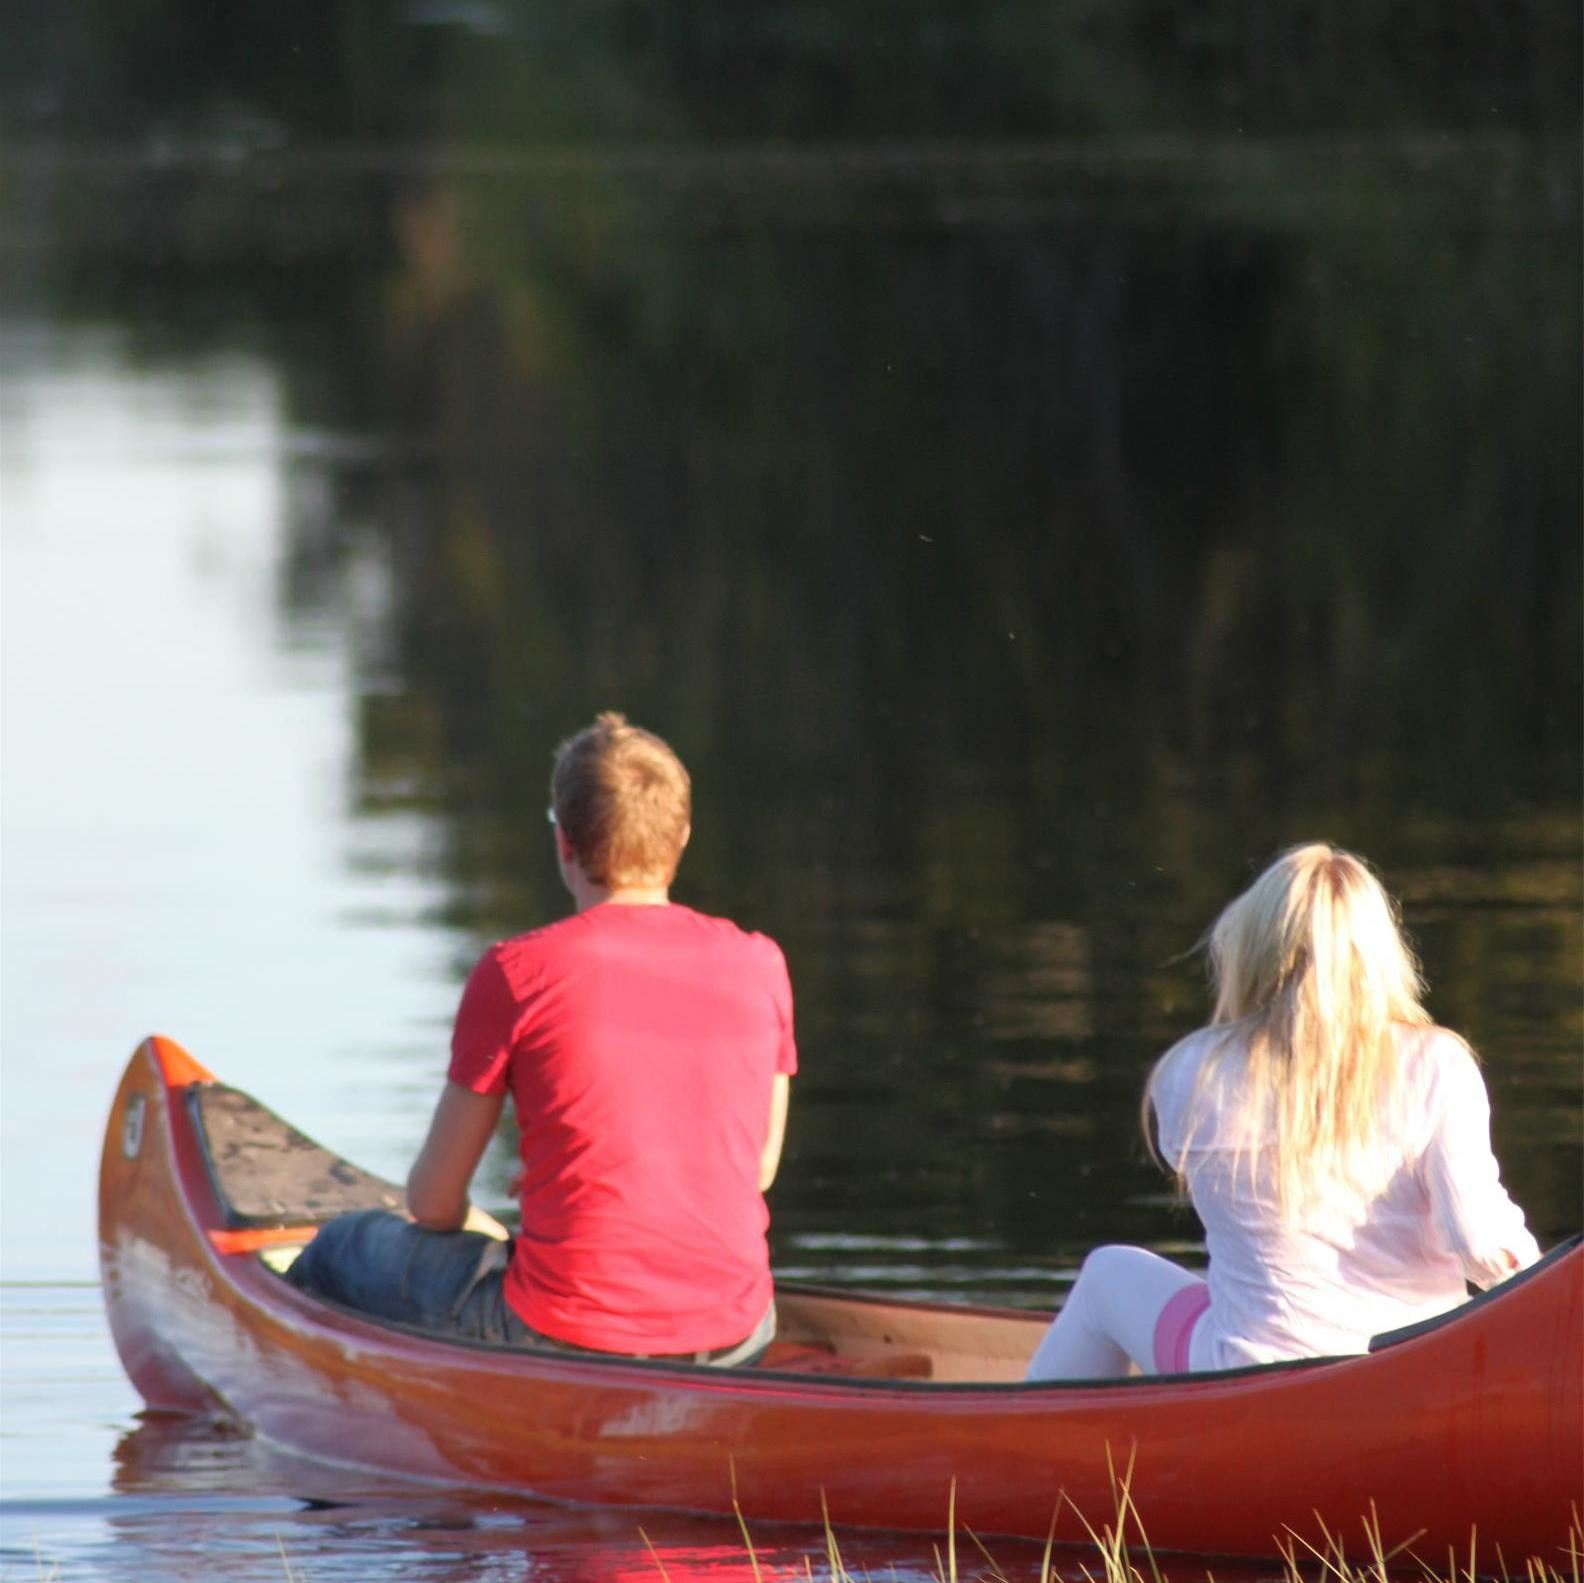 Malungs Turistbyrå, Canoe rental at Malungs Camping